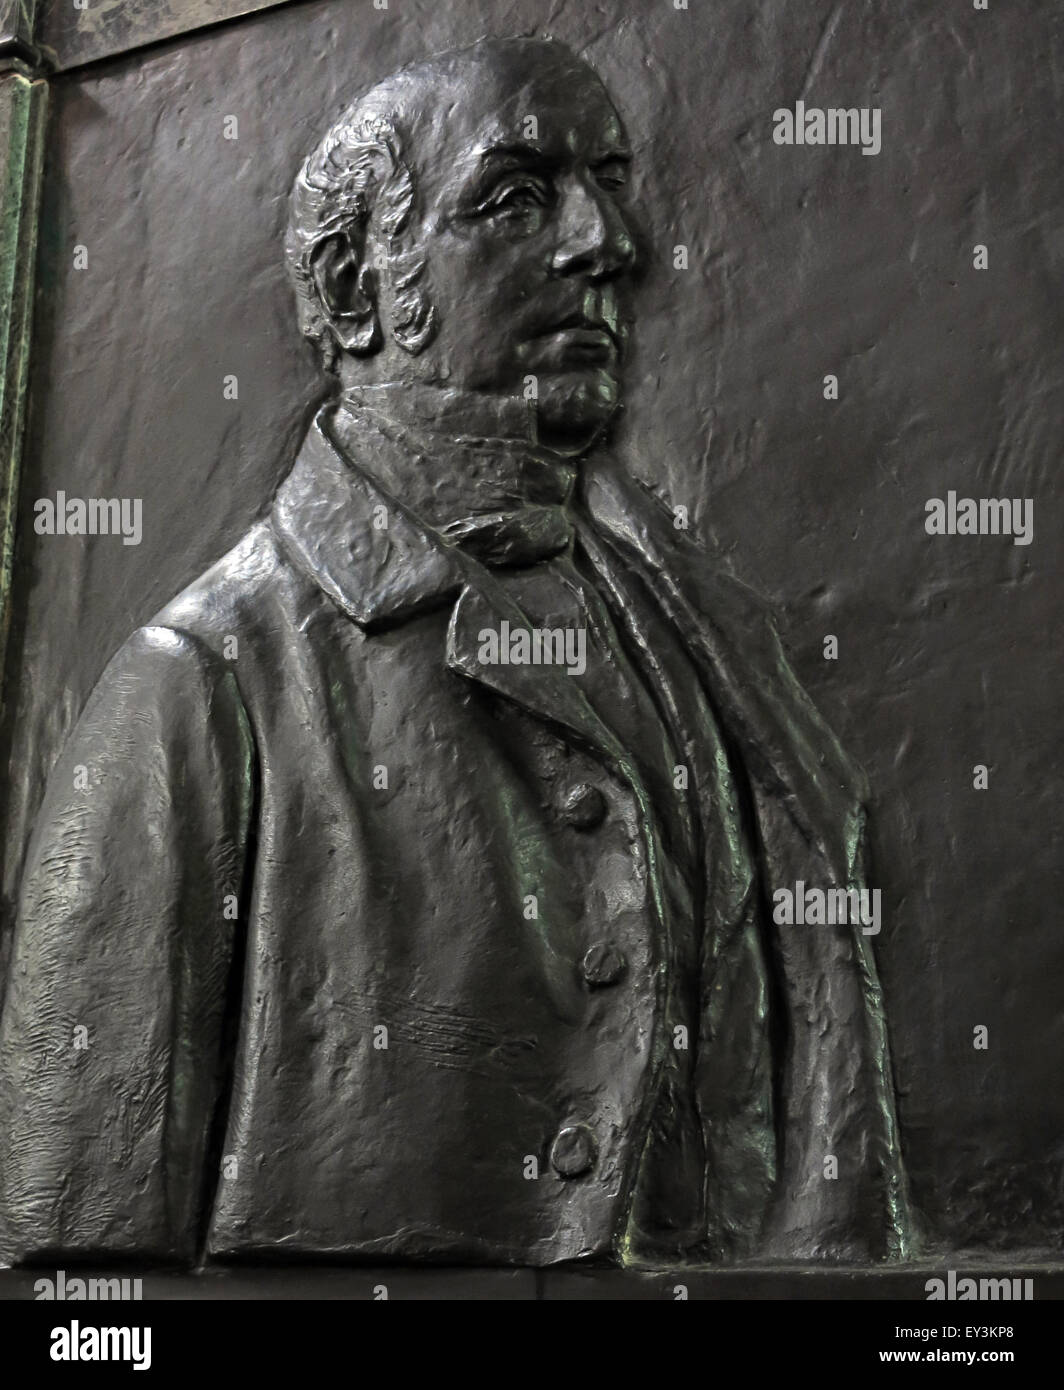 1860,Sir,James,Graham,by,John,Tweed,He,was,an,MP,First,Lord,of,the,Admiralty,Home Secretayr. Freemason,Provincial,Grandmaster,Carlisle,Cathedral,United Kingdom,Church,bronze,sculpture,statue,GoTonySmith,7 Abbey St,Carlisle,Cumbria,England,UK,-,CA3,8TZ,CA3 8TZ,Buy Pictures of,Buy Images Of